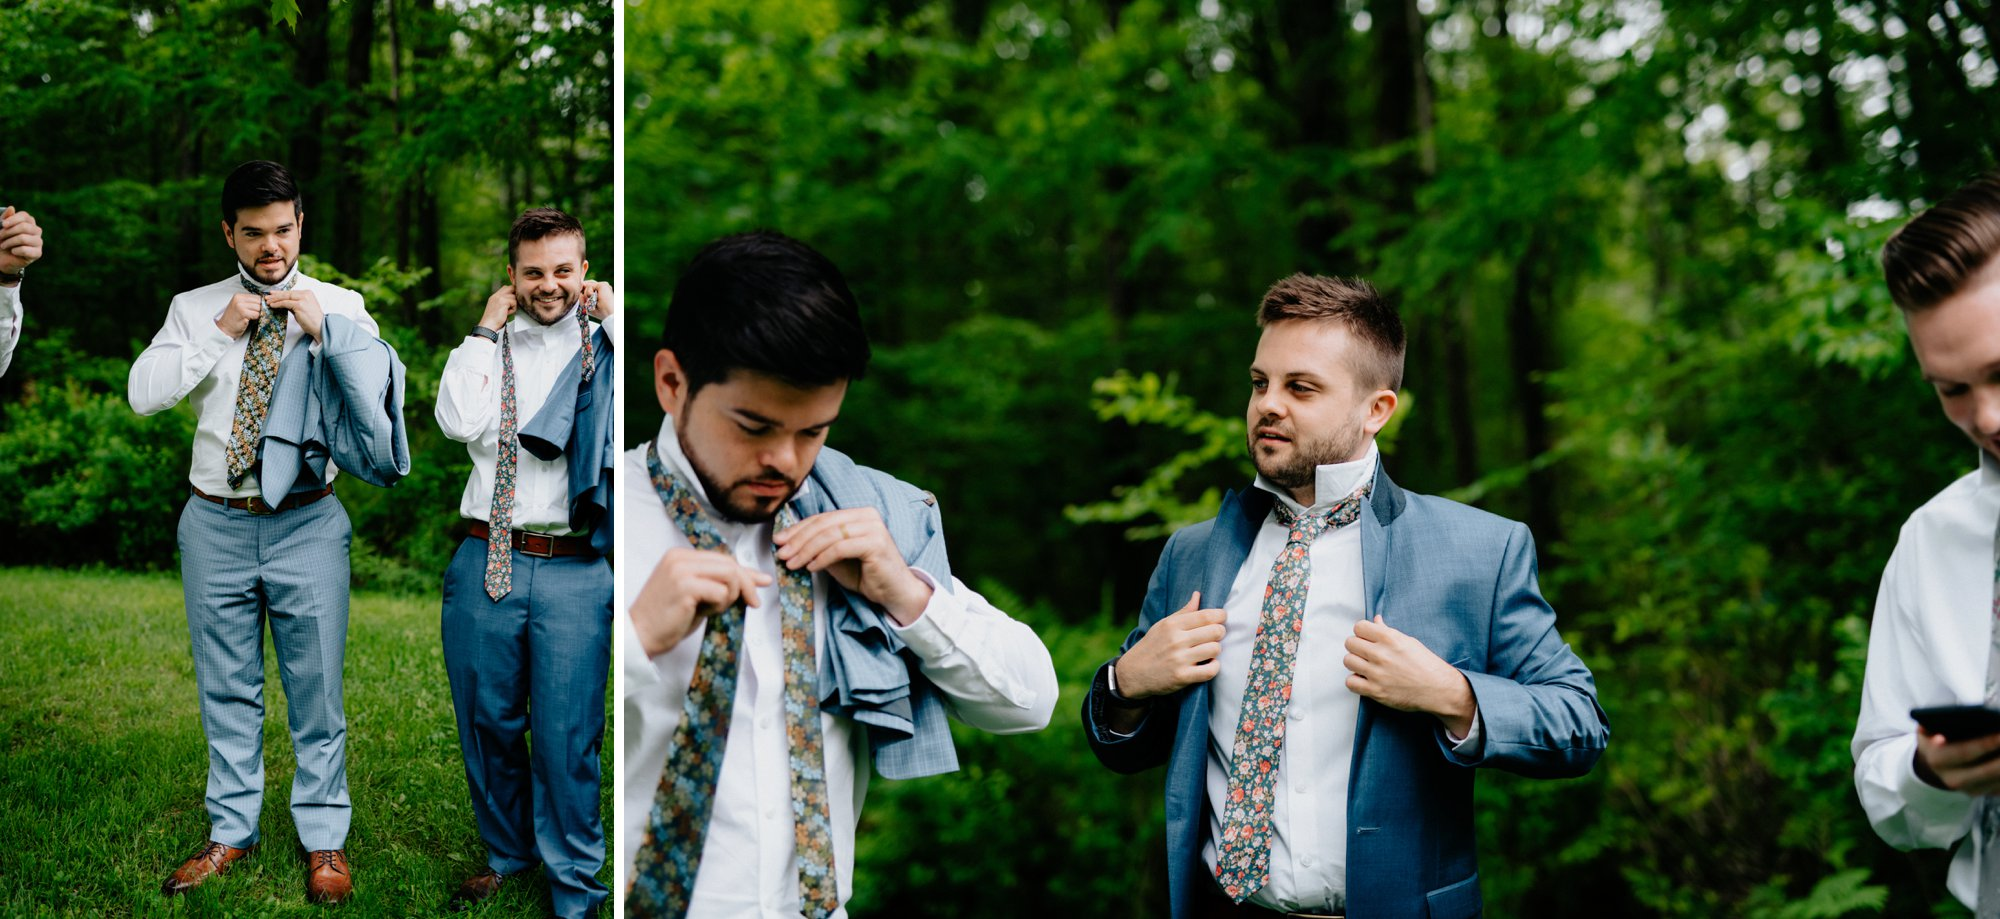 Fiddle Lake Farm Philadelphia Pennsylvania Misty Rustic Wedding with Lush Florals Guys prep